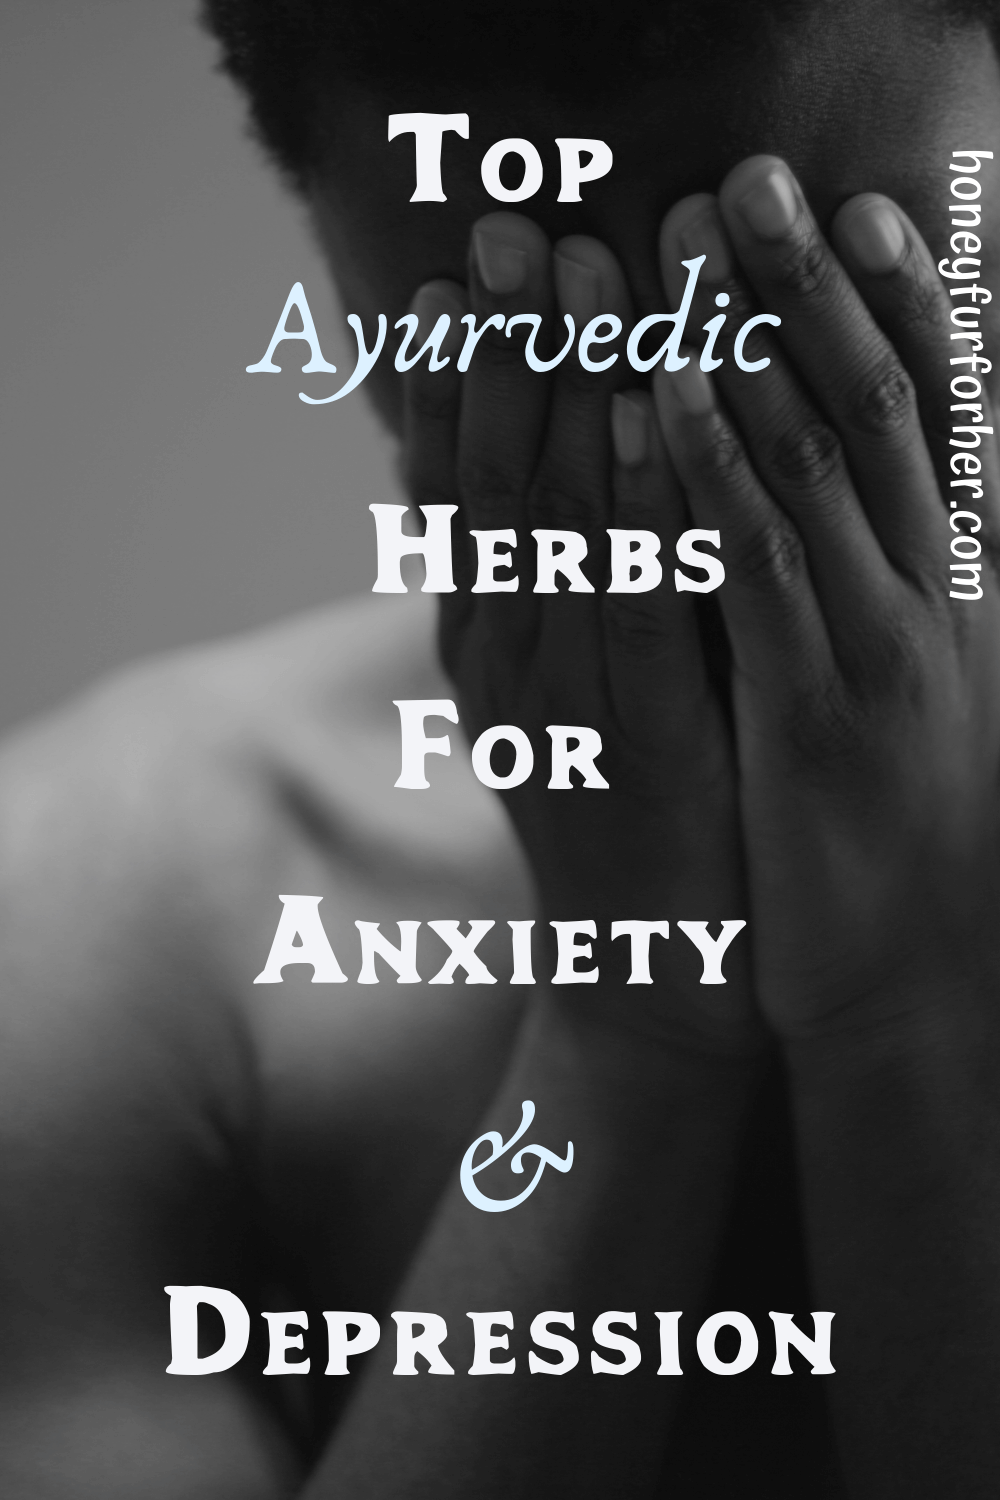 Ayurvedic Herbs For Anxiety And Depression Pinterest Graphic